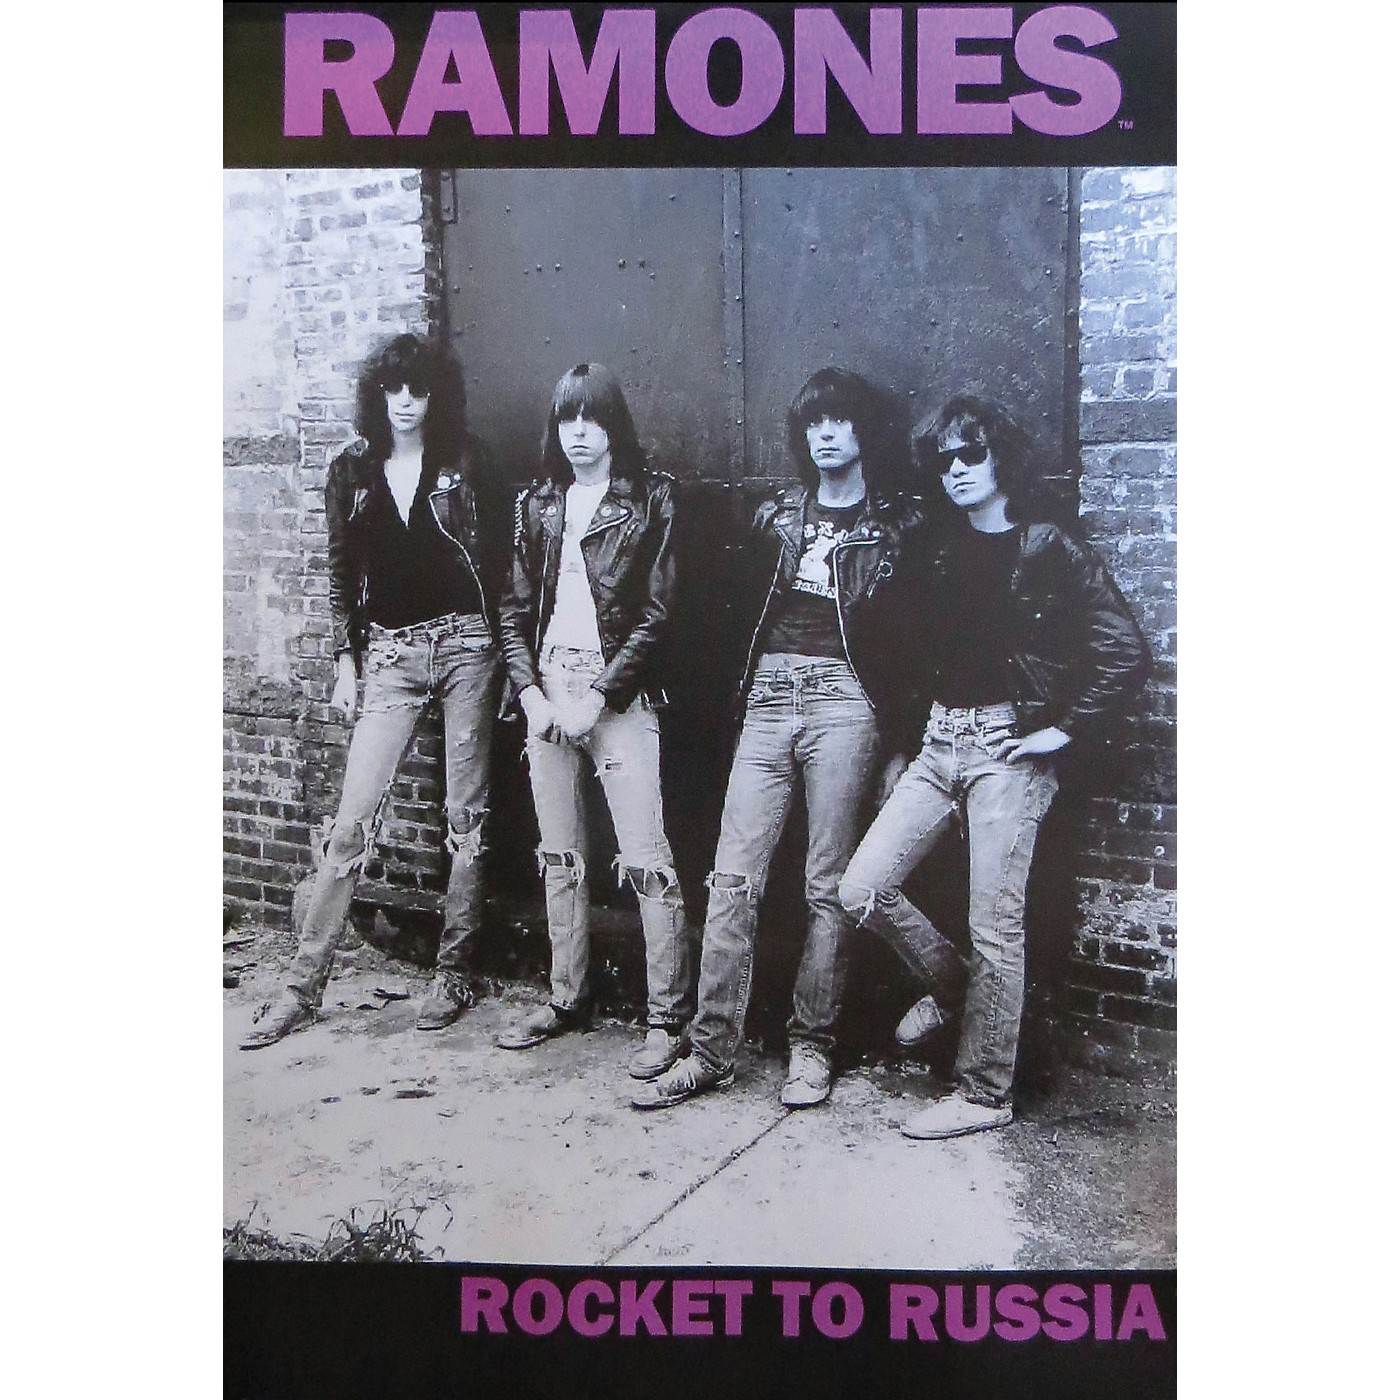 Hal Leonard The Ramones - Rocket to Russia - Wall Poster thumbnail